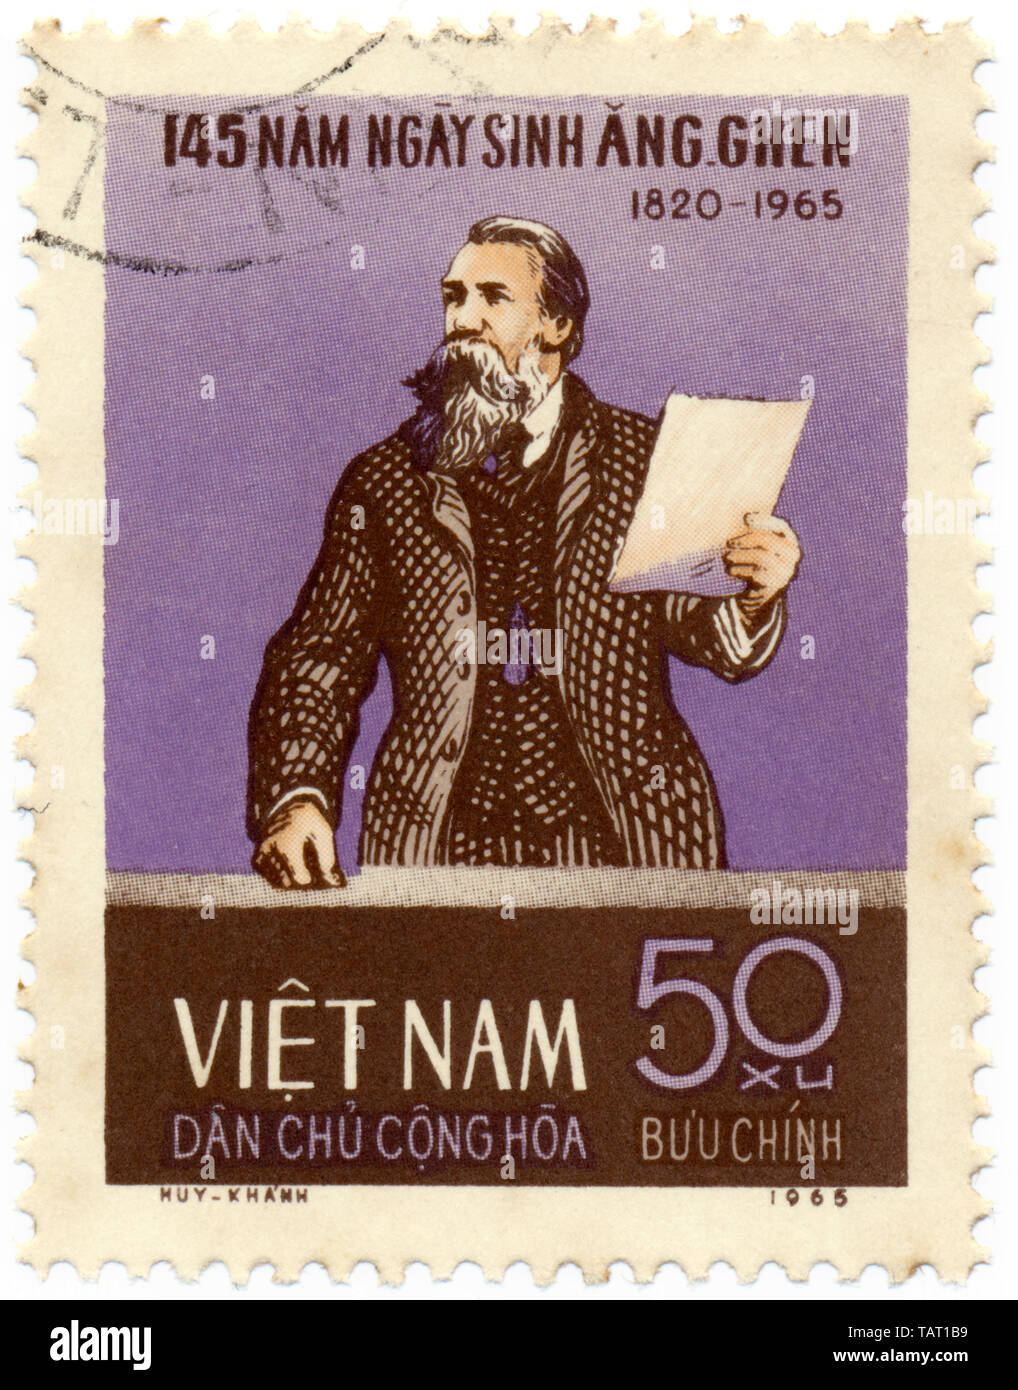 Historic postage stamps from Vietnam, Historische Briefmarken, Friedrich Engels, 1965, Vietnam, Asien - Stock Image